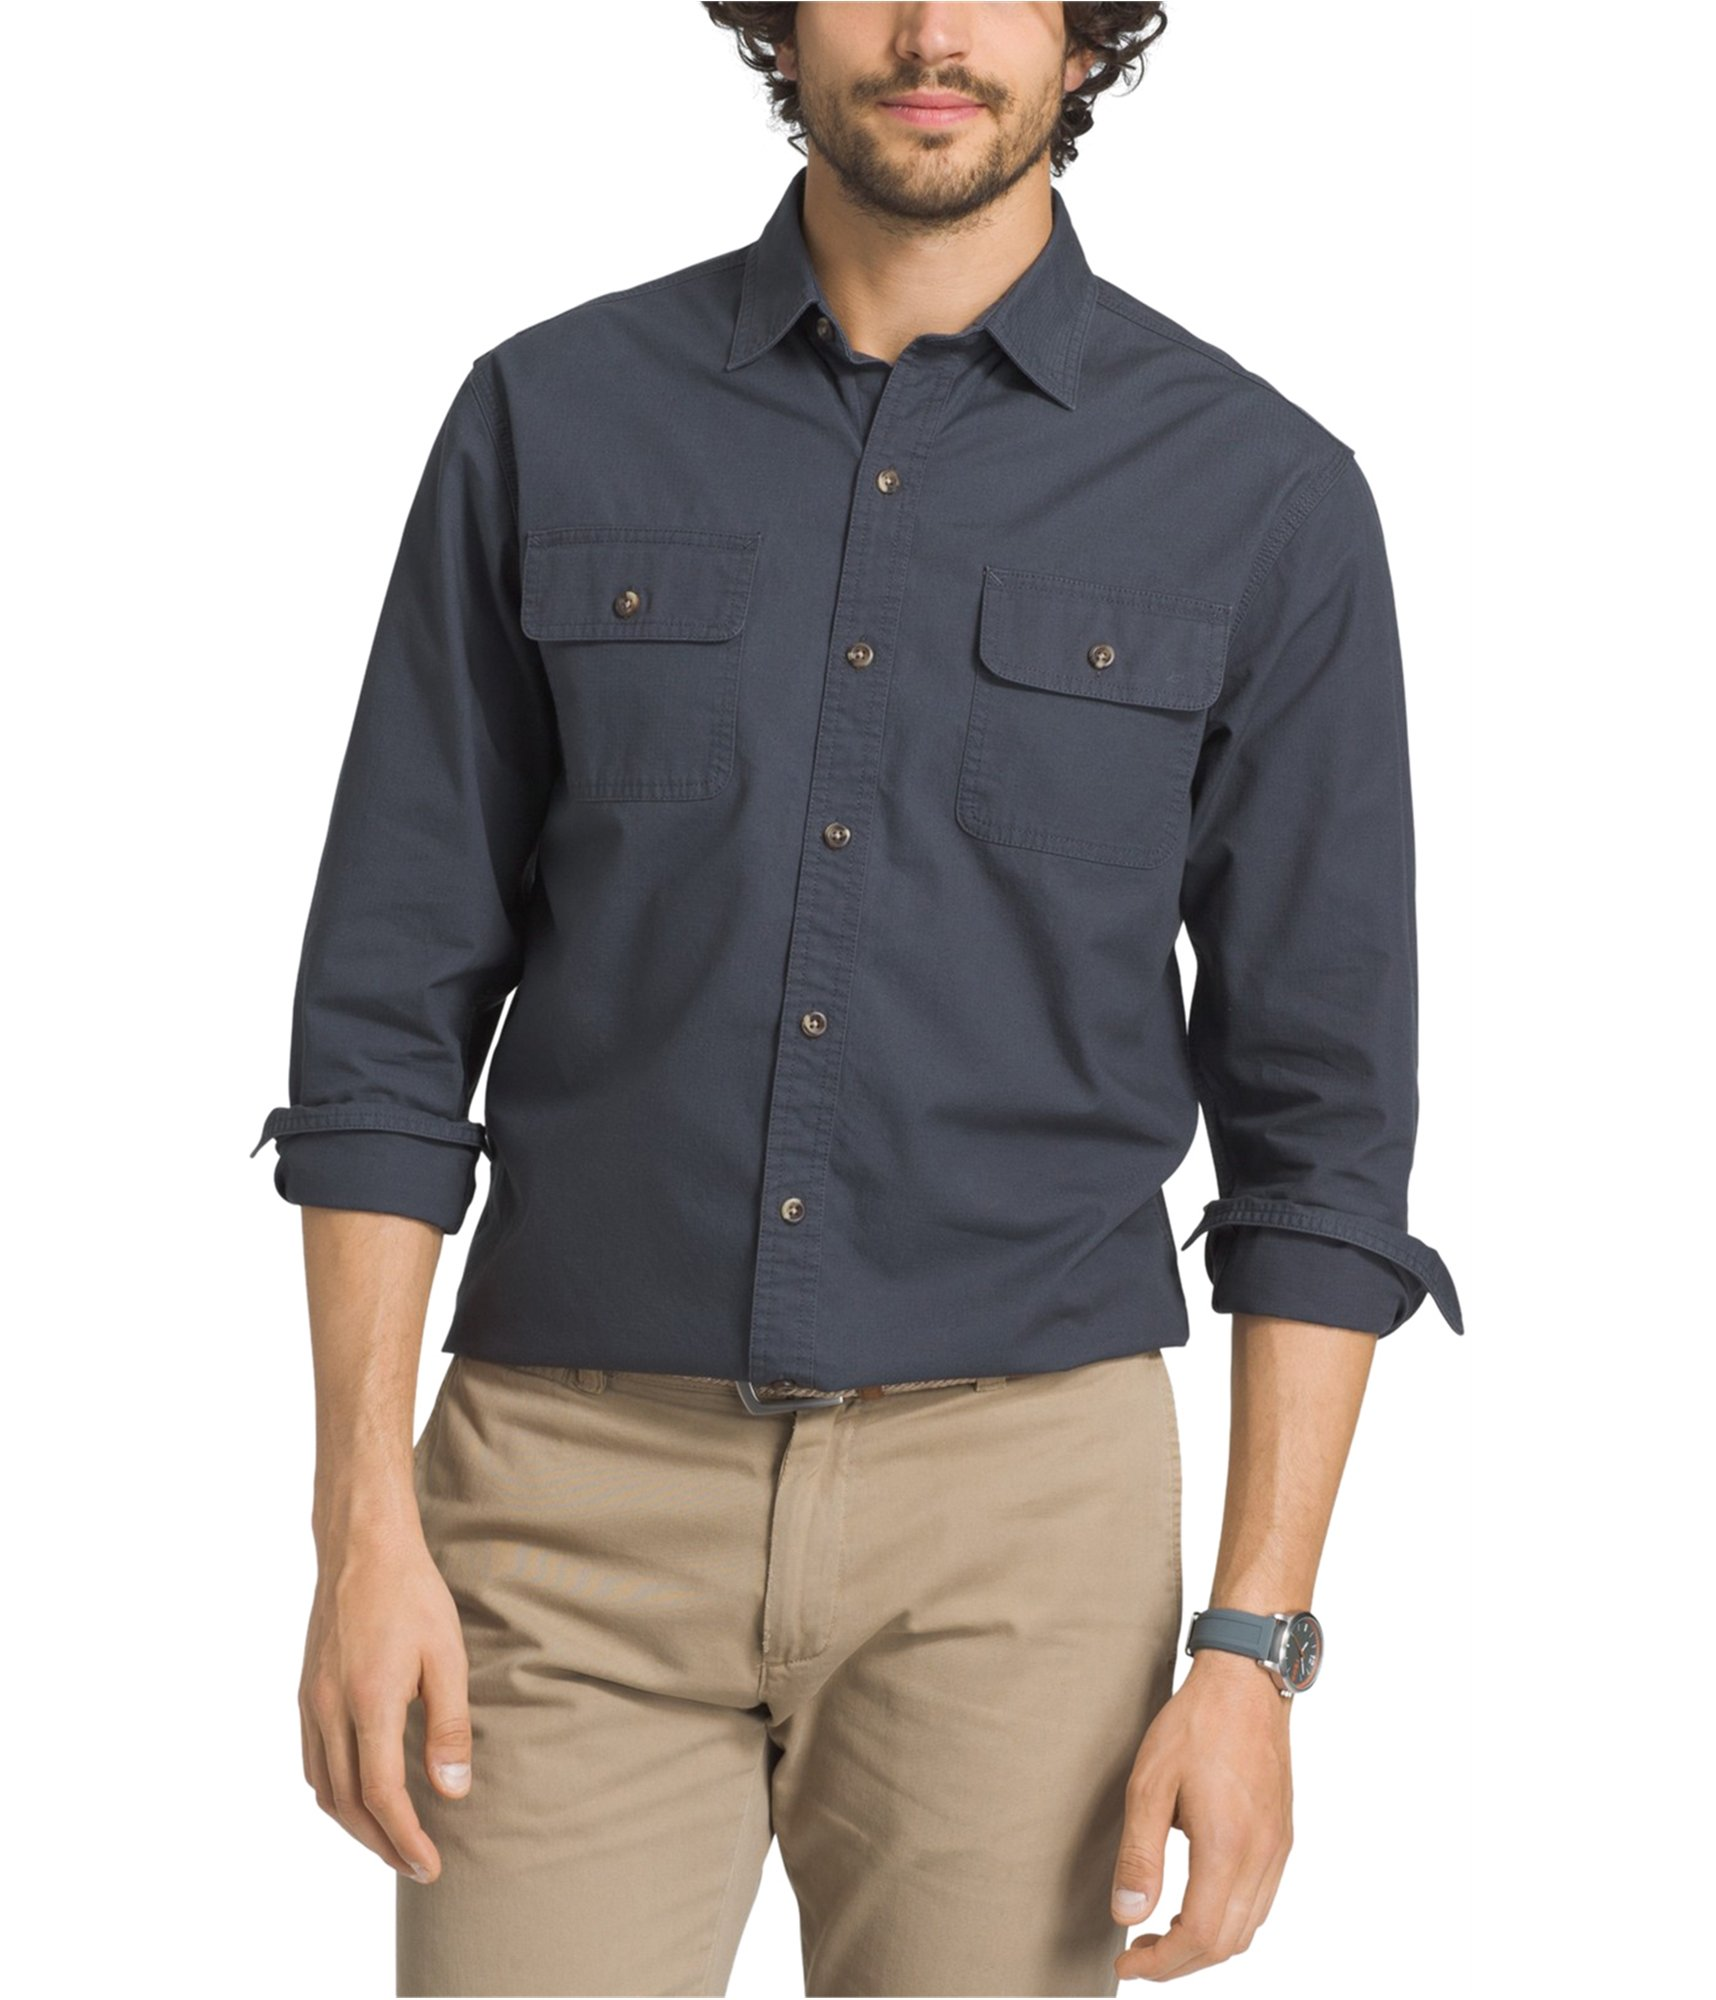 0fe20bc08c0 G.H. Bass   Co. Men s Essential Double Pocket Textured Long Sleeve Shirt